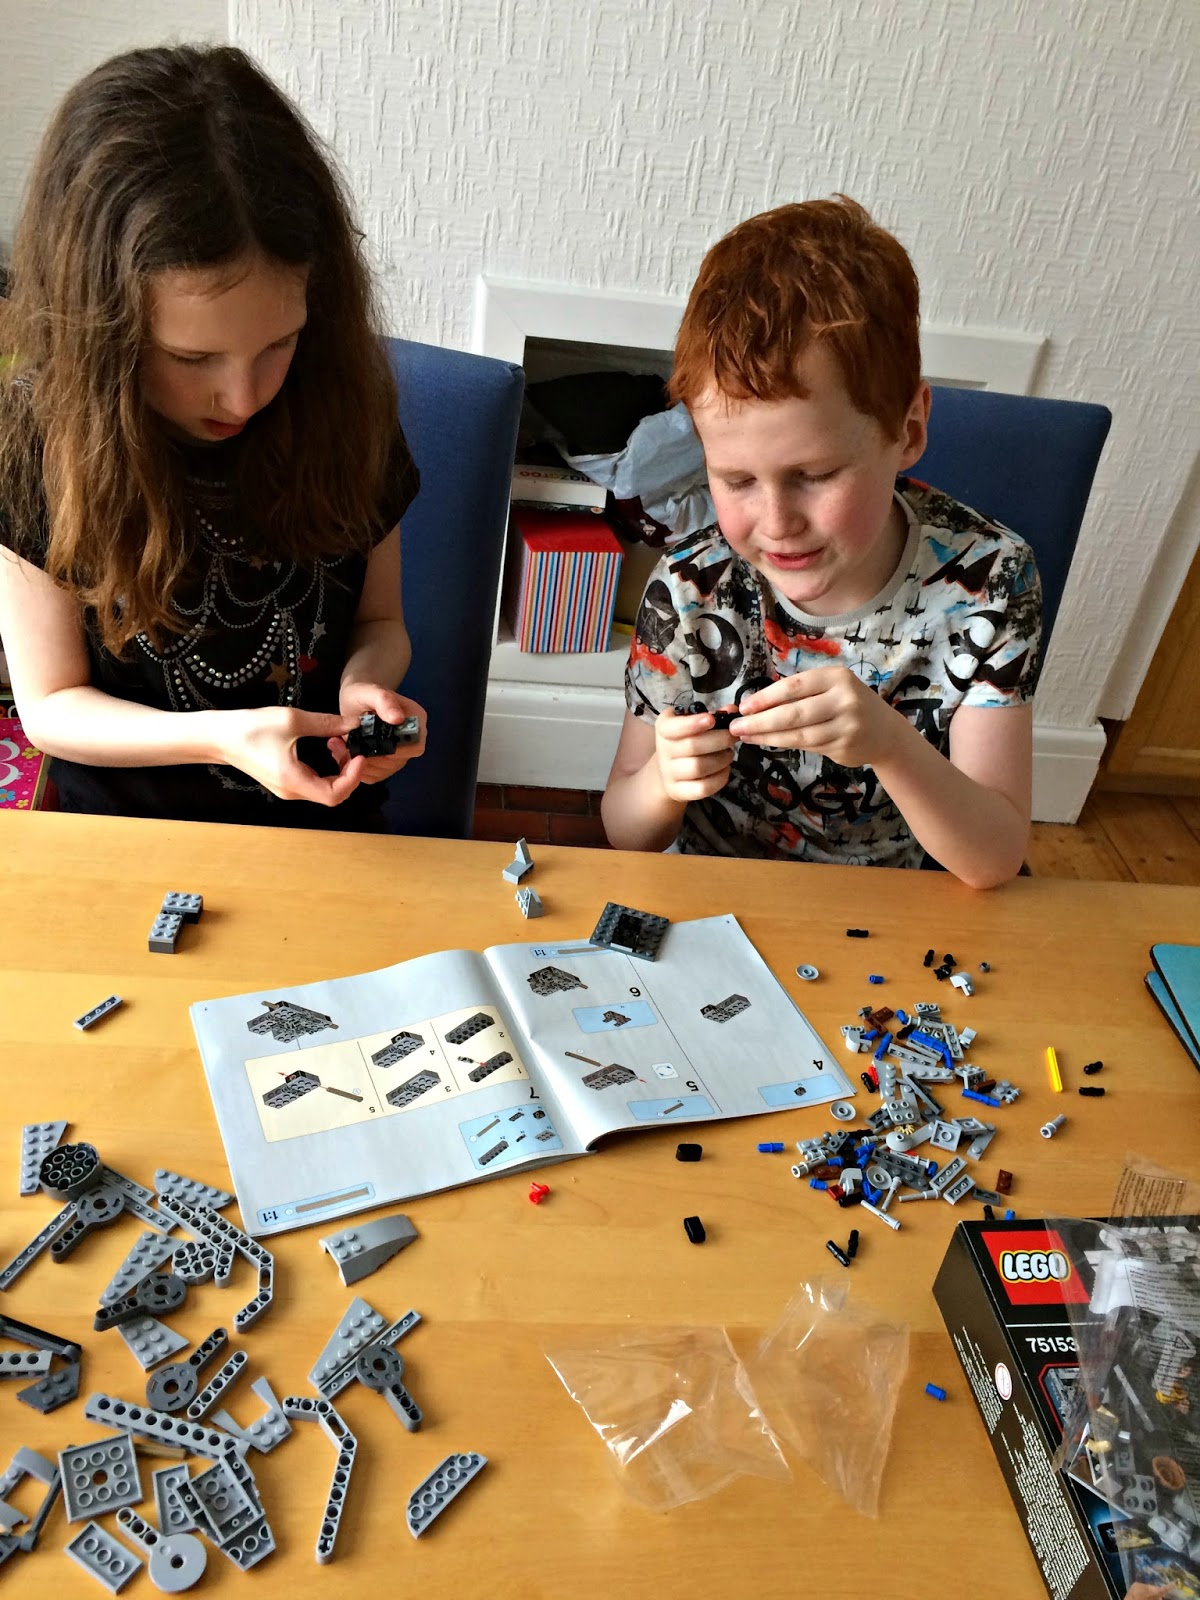 Caitlin & Ieuan assembling the Lego 75153 Star Wars AT-ST Walker Building Set